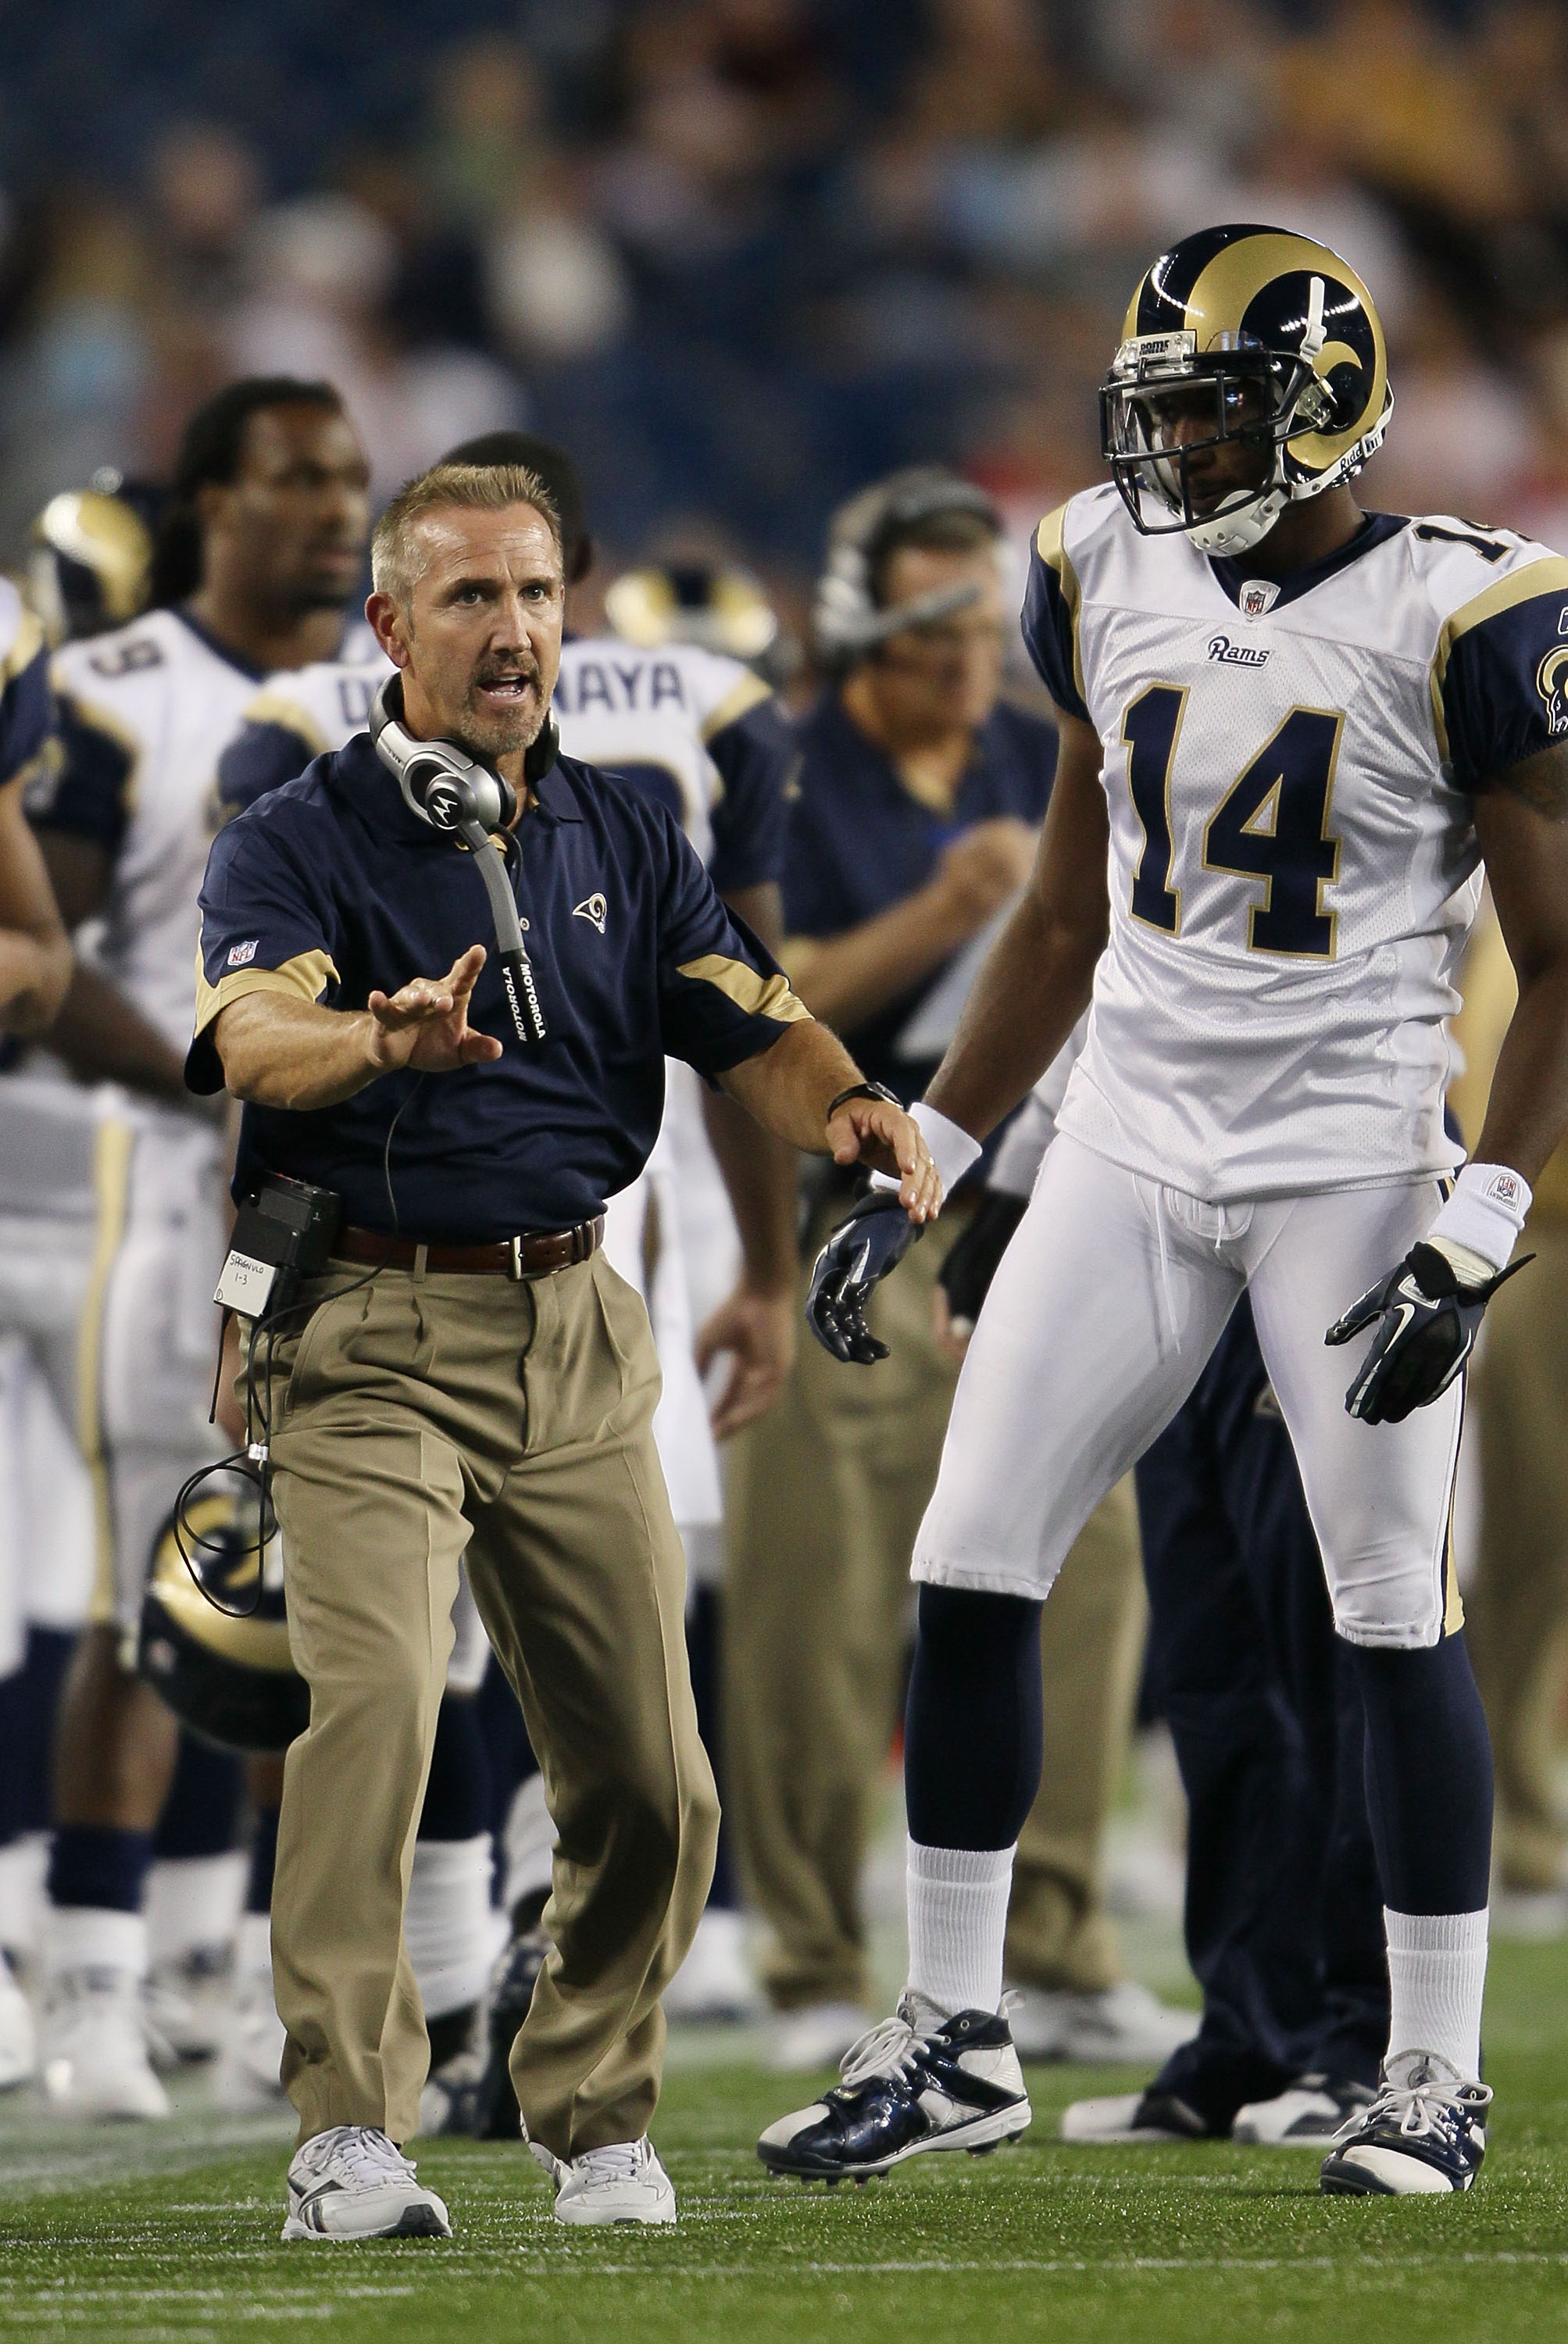 FOXBORO, MA - AUGUST 26:  Head coach Steve Spagnuolo of the St. Louis Rams talks with Keenan Burton #14 in the second half against the New England Patriots on August 26, 2010 at Gillette Stadium in Foxboro, Massachusetts. The Rams defeated the Patriots 36